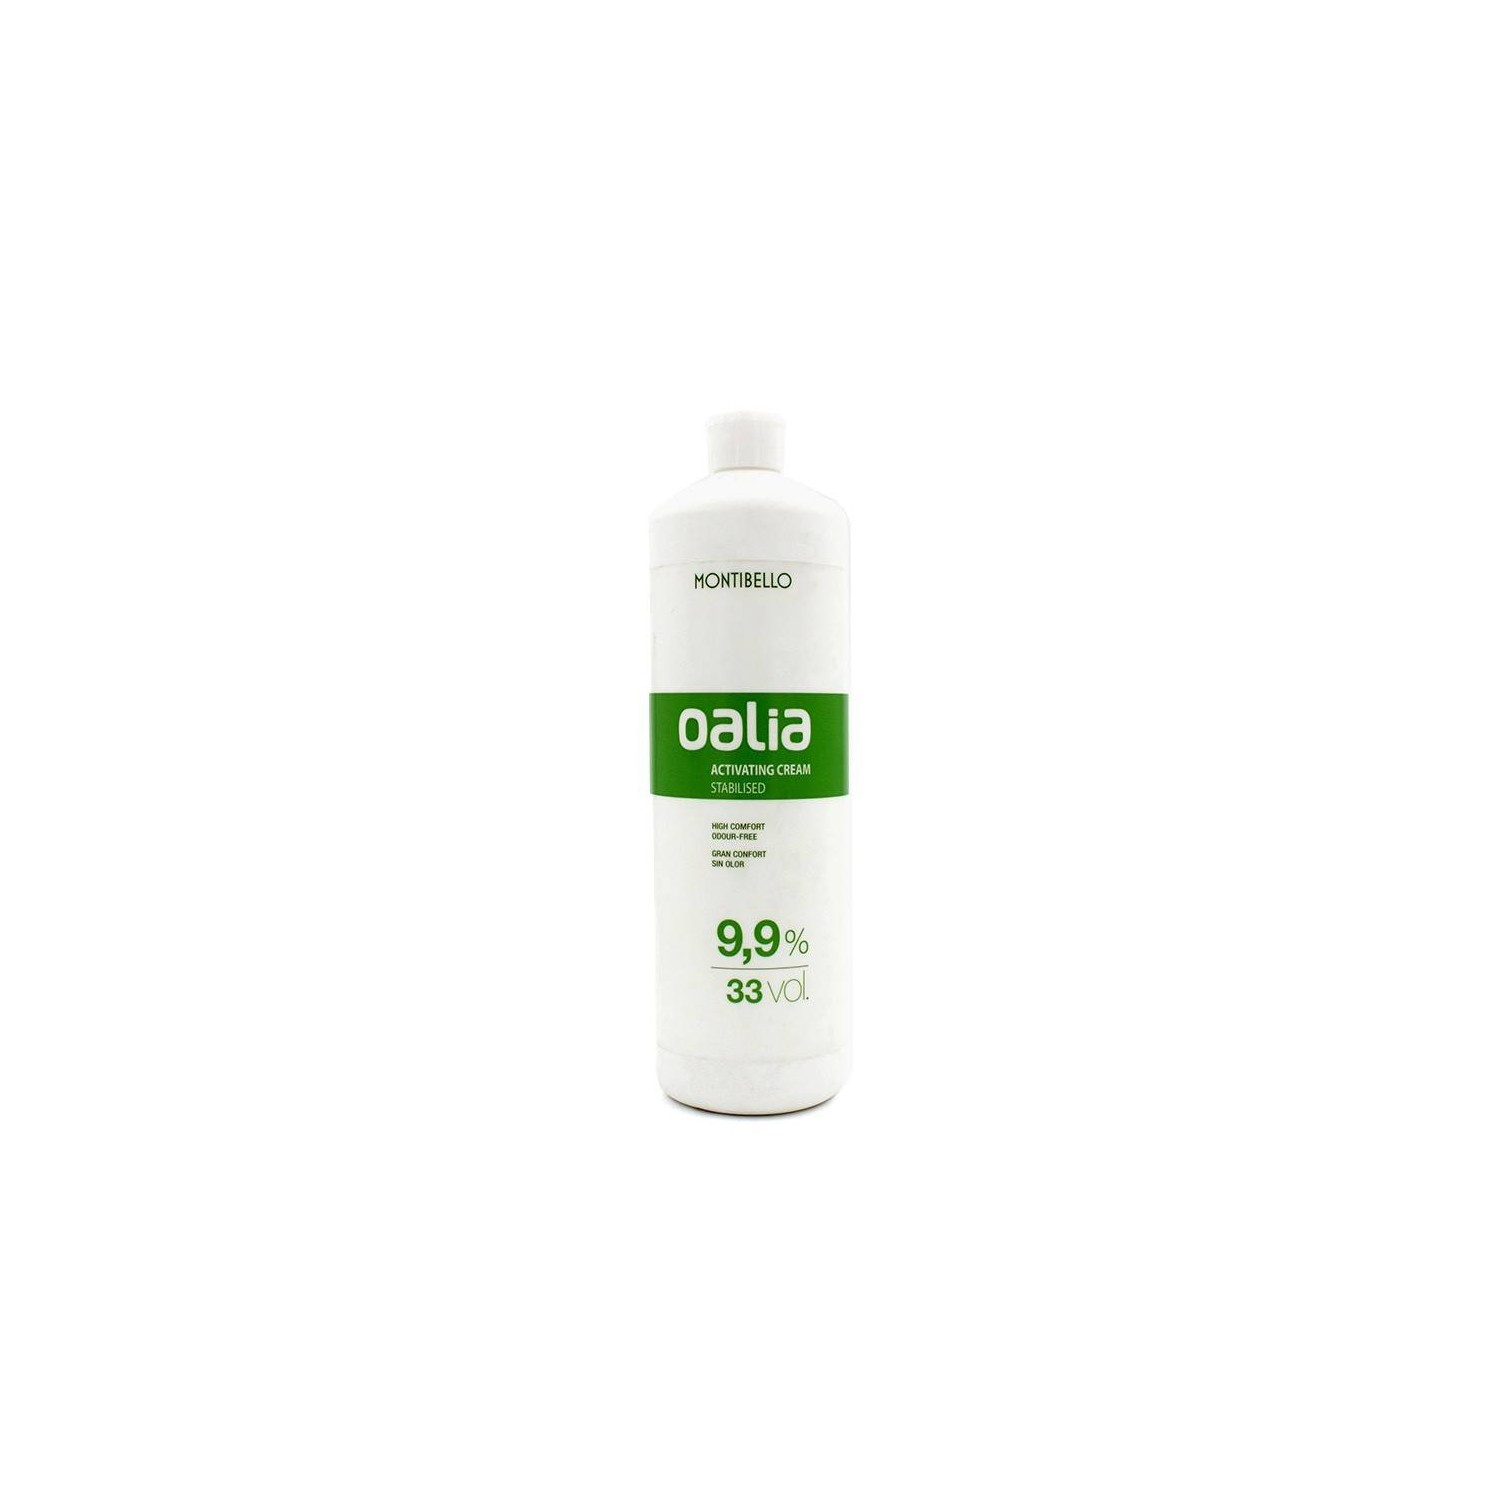 Montibello Oalia Activ Cream 33 Vol 9.9% 1000 Ml